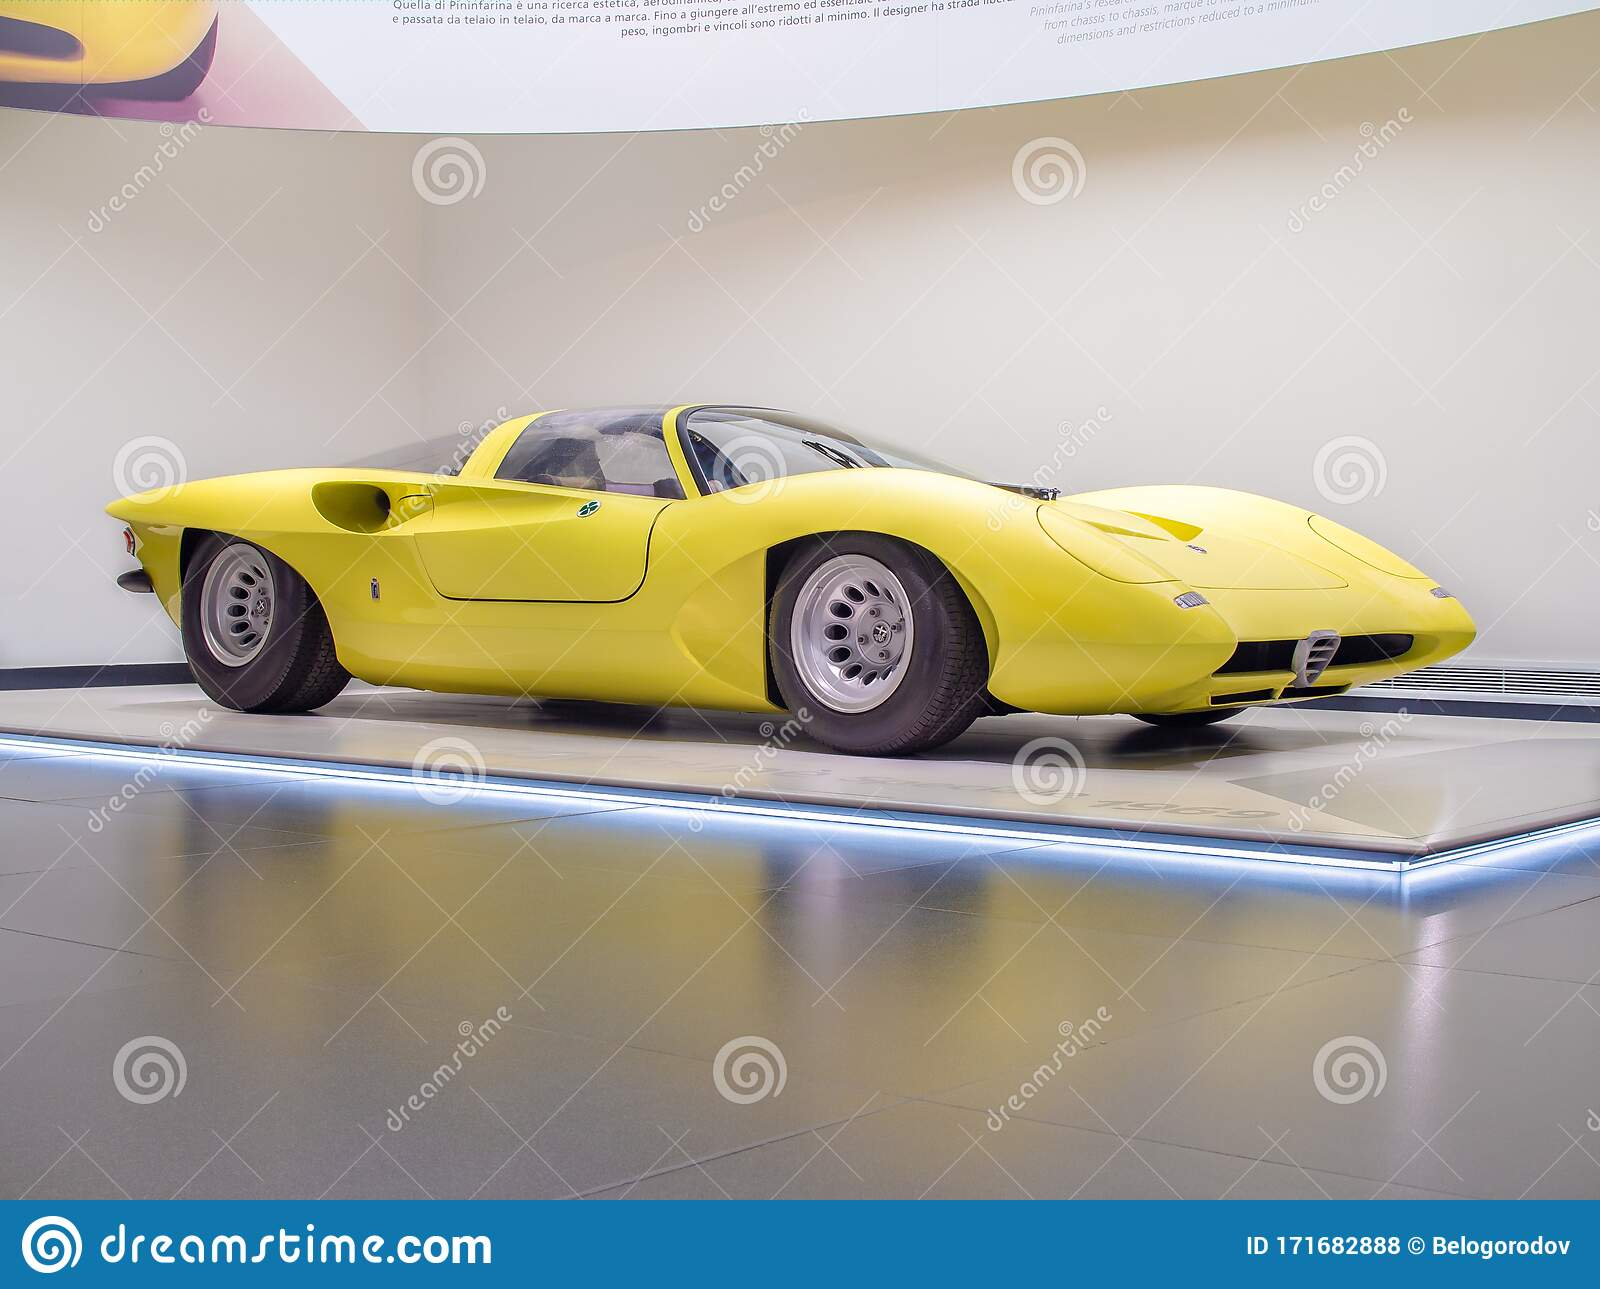 1969 Alfa Romeo 33 2 Coupe Speciale Editorial Stock Photo Image Of Historical Classic 171682888